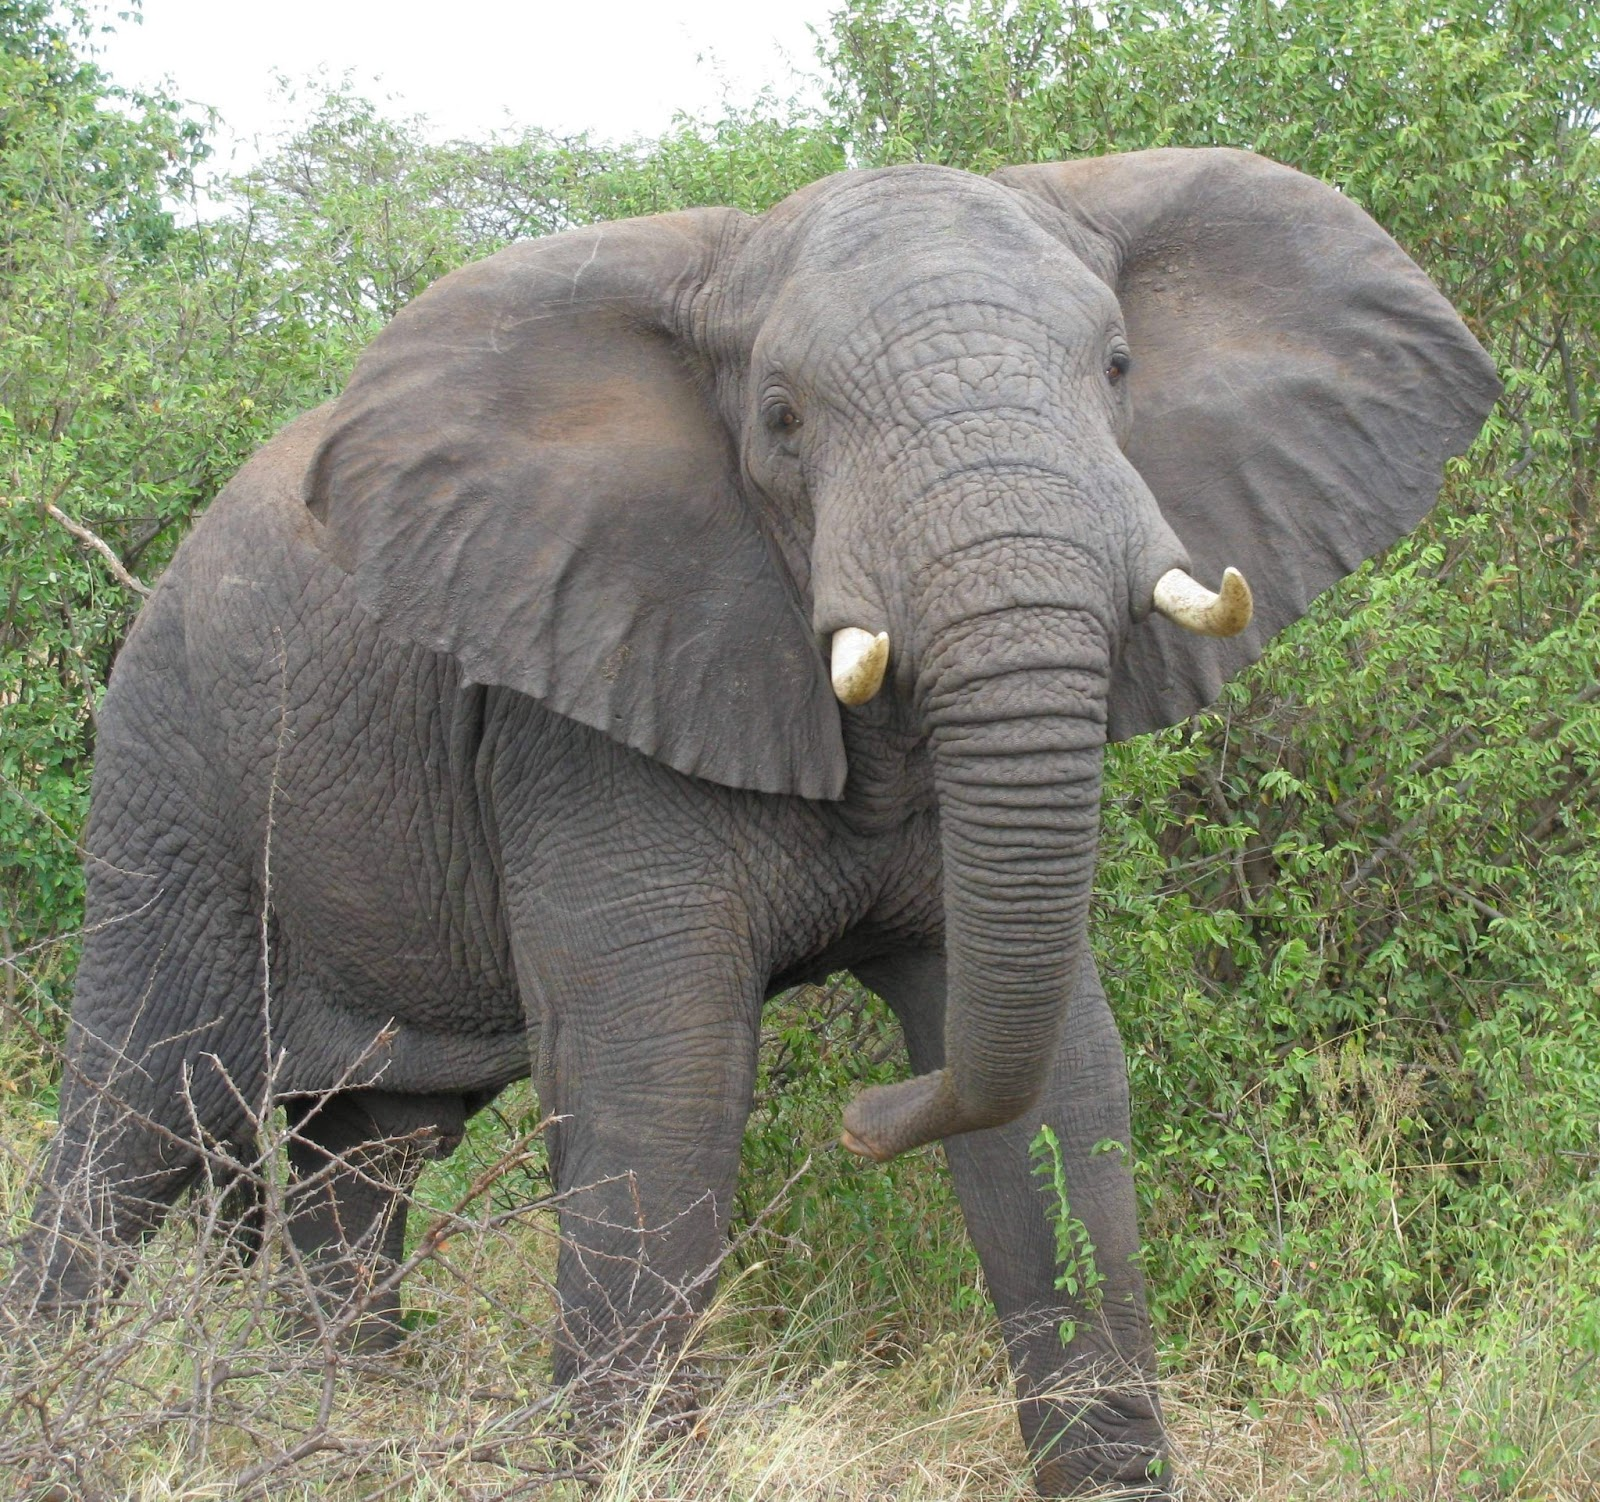 the elephant El hant (ĕl′ə-fənt) n 1 any of several very large herbivorous mammals of the family elephantidae native to africa, south asia, and southeast asia, having thick .